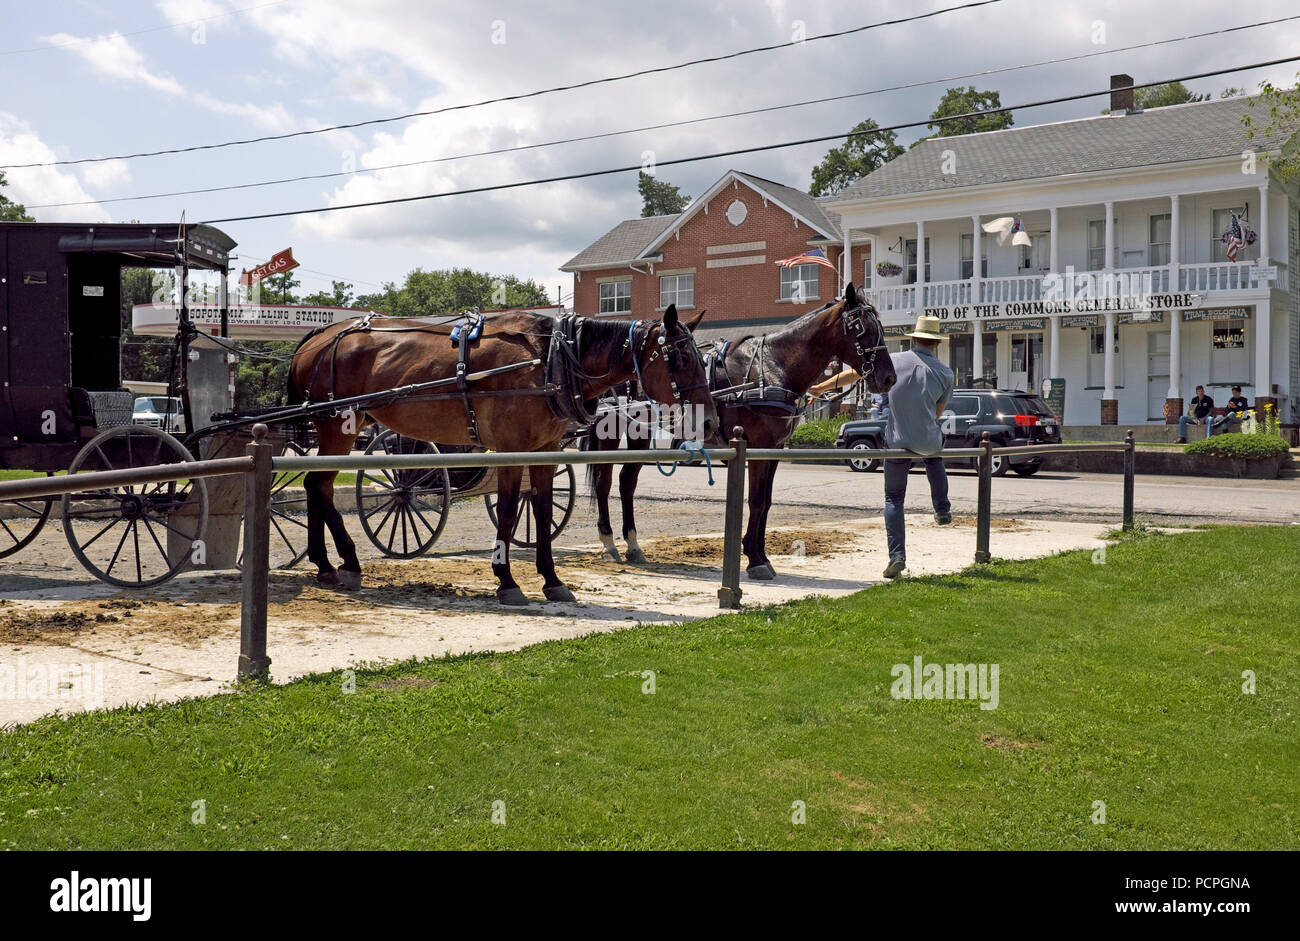 Store Amish Country Stock Photos Amp Store Amish Country